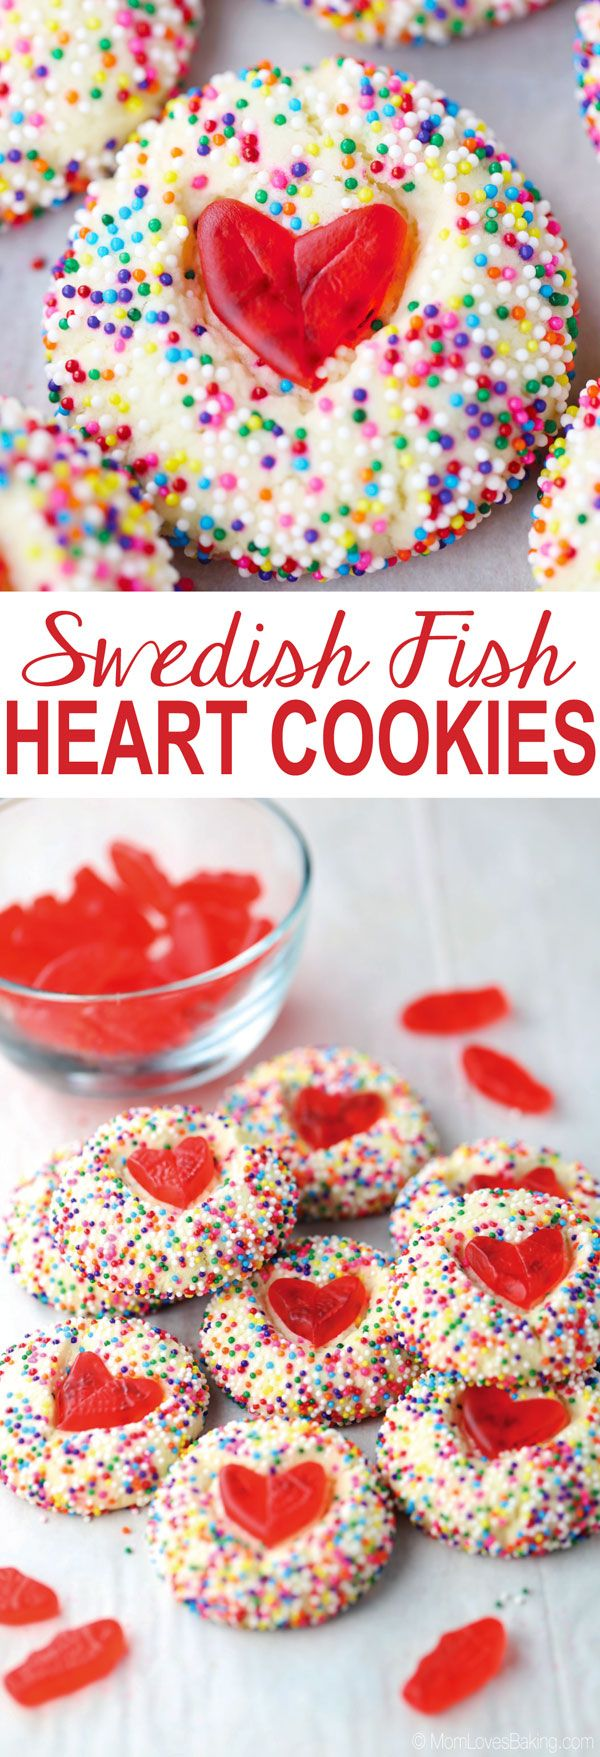 Swedish Fish Heart Cookies | Recipe | Swedish fish, Heart cookies ...